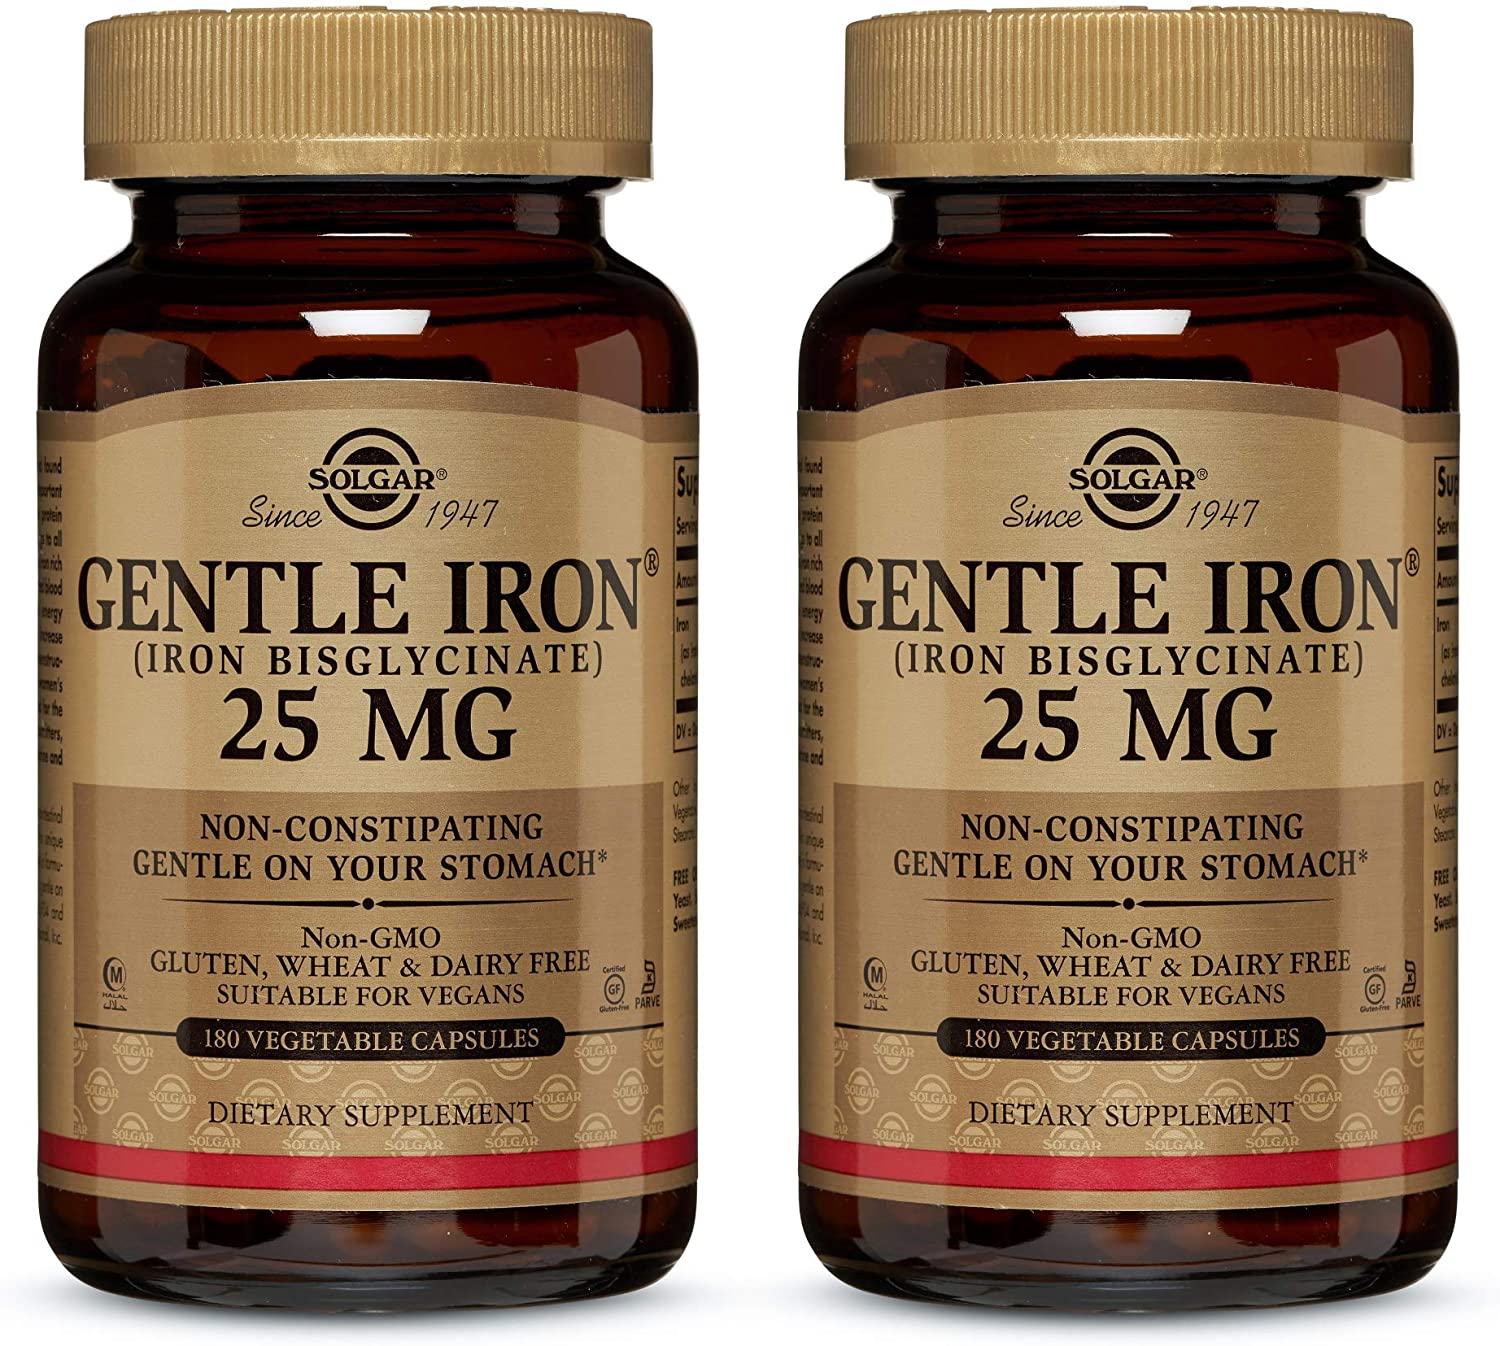 Solgar Gentle Iron 25 mg, 180 Vegetable Capsules - Pack of 2 - Ideal for Sensitive Stomachs - Non-Constipating - Red Blood Cell Supplement - Non-GMO, Vegan, Gluten & Dairy Free - 360 Total Servings